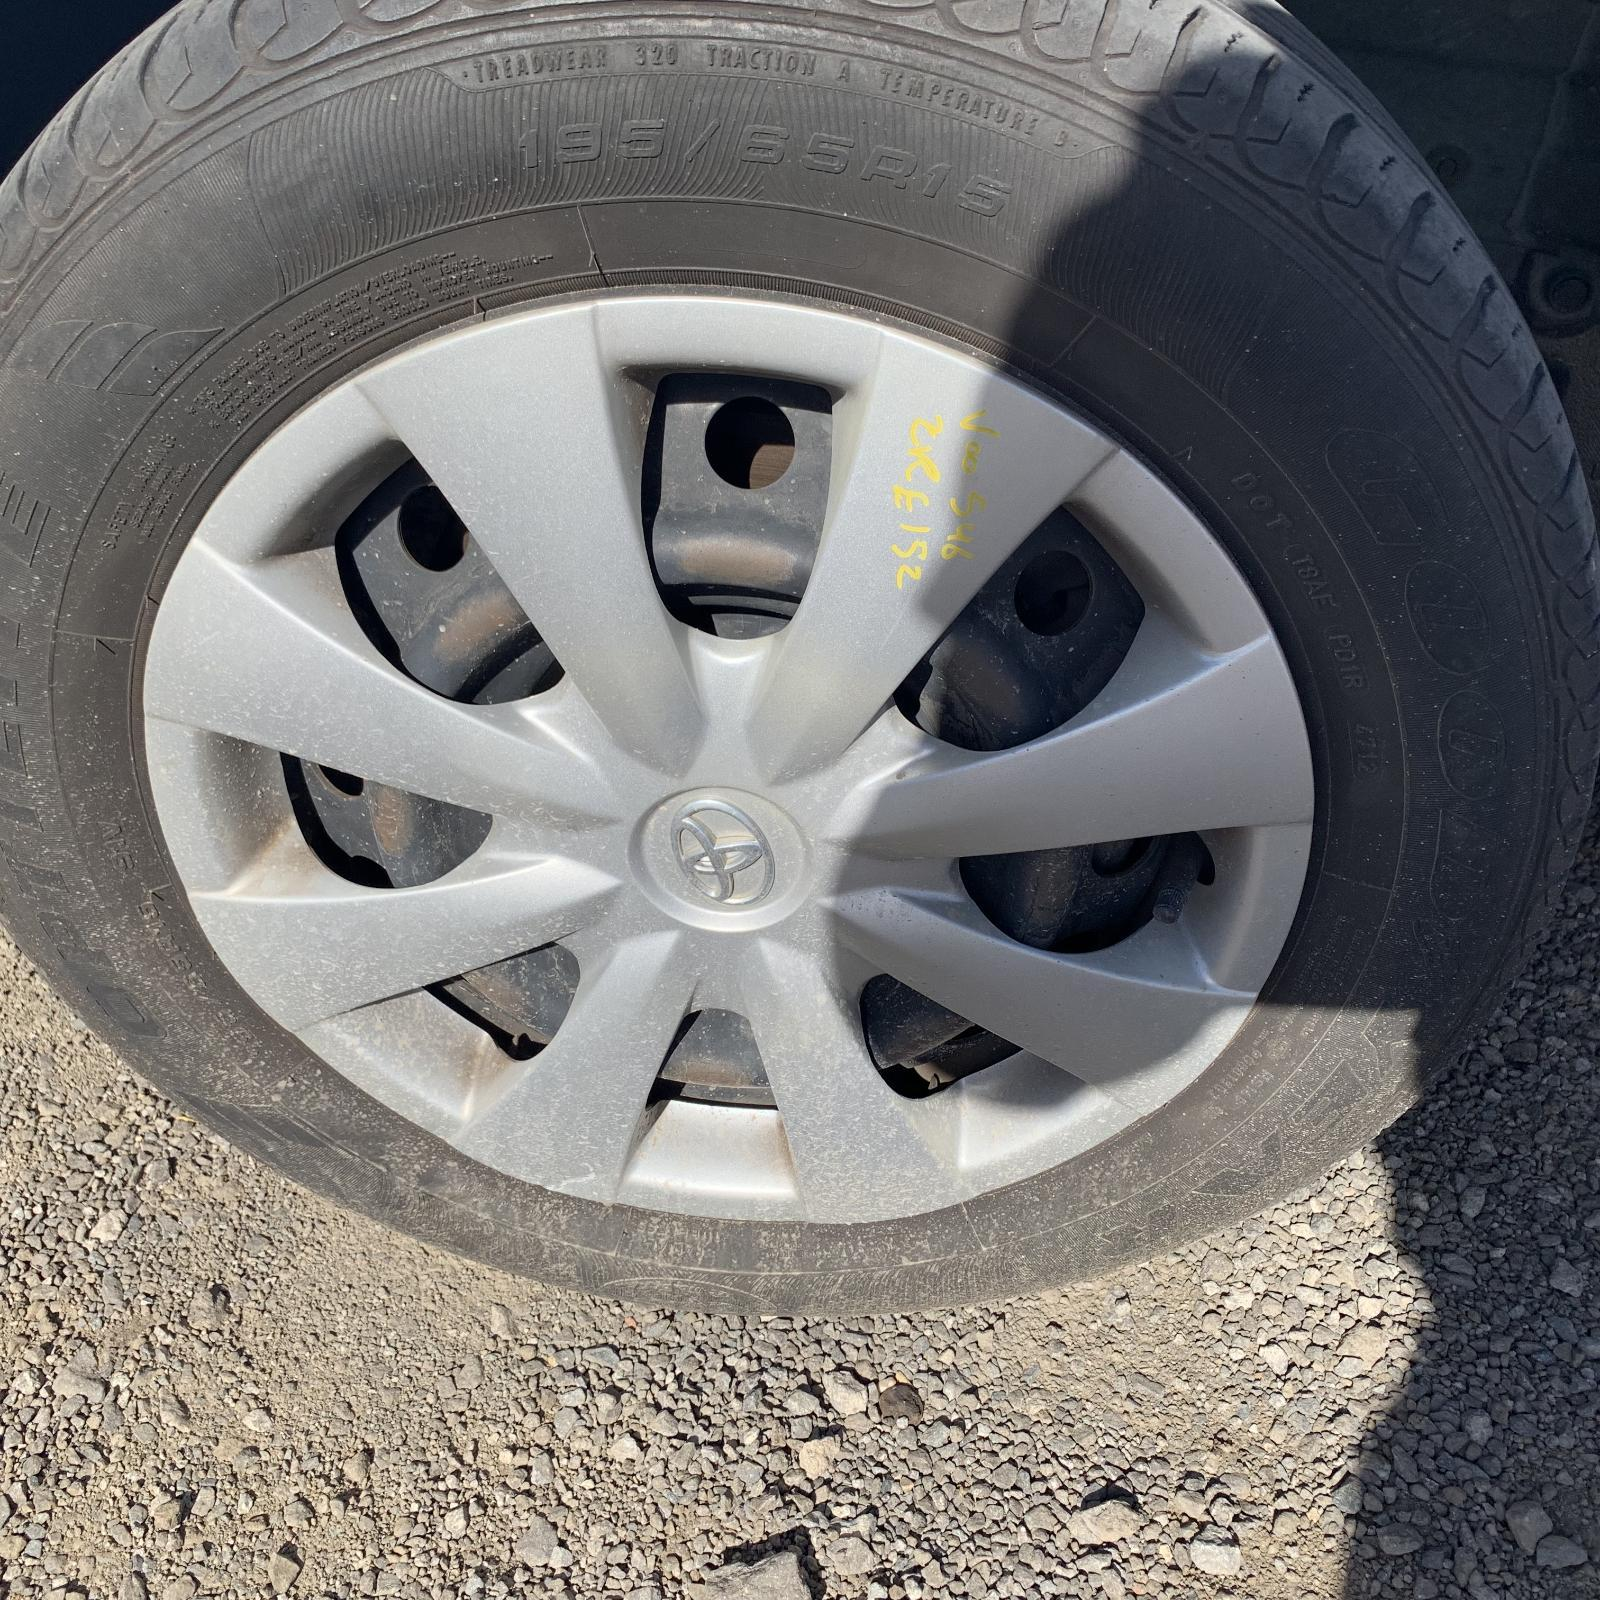 TOYOTA COROLLA, Wheel Cover/Hub Cap, 150 SERIES, 03/07-12/13